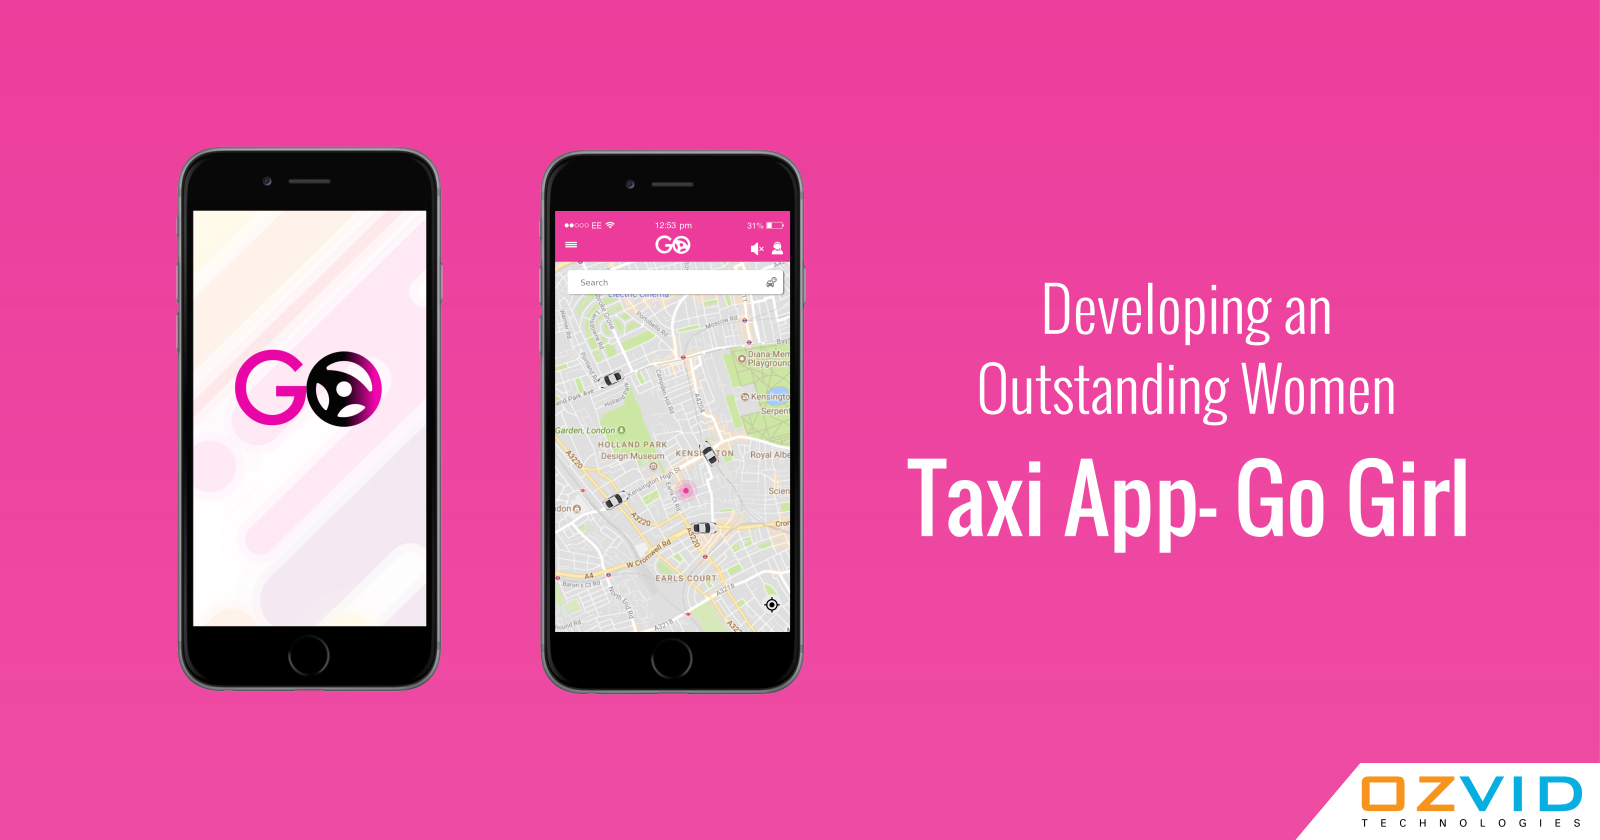 Developing an Outstanding Women Taxi App- Go Girl